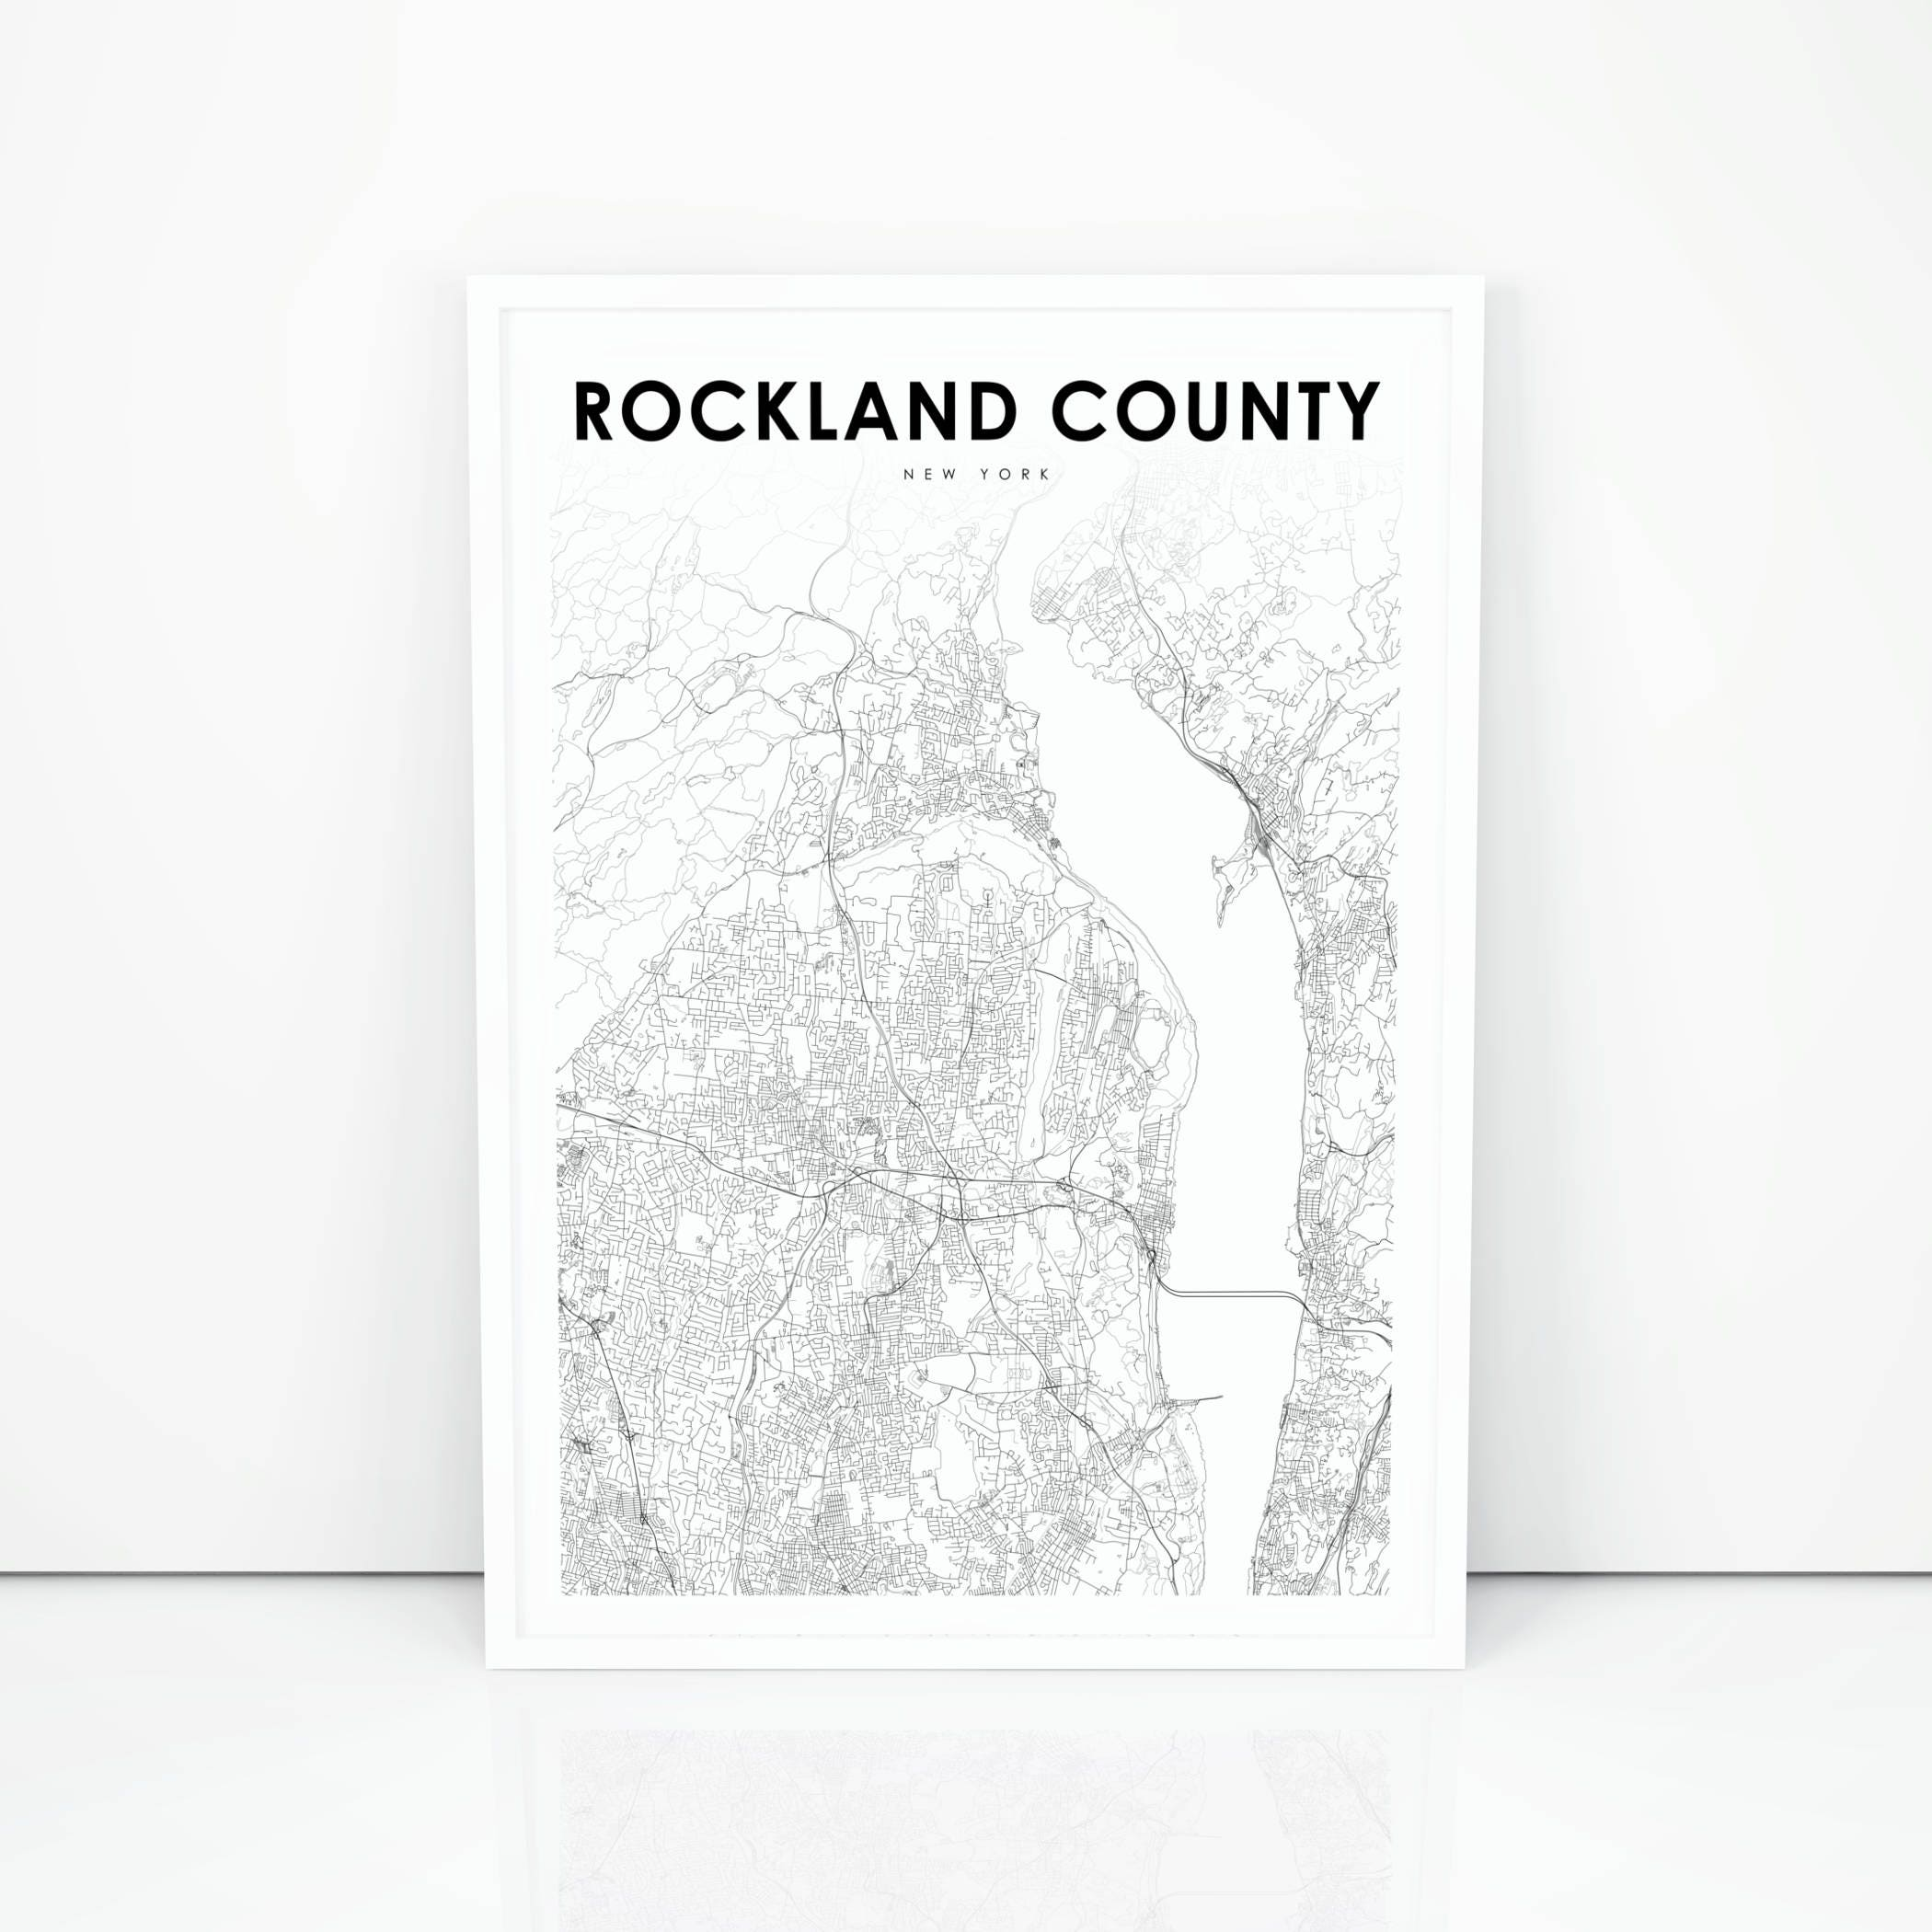 Rockland County Map Print, New York NY USA Map Art Poster, City Street on rockland county ny zip codes list, rockland county ny weather map, gloucester county nj street map, orange and rockland counties ny map, tioga county ny street map, rockland county ny hotel, oneida county ny street map, bergen county street map, sullivan county ny street map, trumbull ct street map, monroe ny map, rockland county ny history, cape may county nj street map, camden county nj street map, suffolk county ny street map, hudson county nj street map, rockland county ny map cities towns and villages, dutchess county ny street map, north rockland ny map, niagara county ny street map,